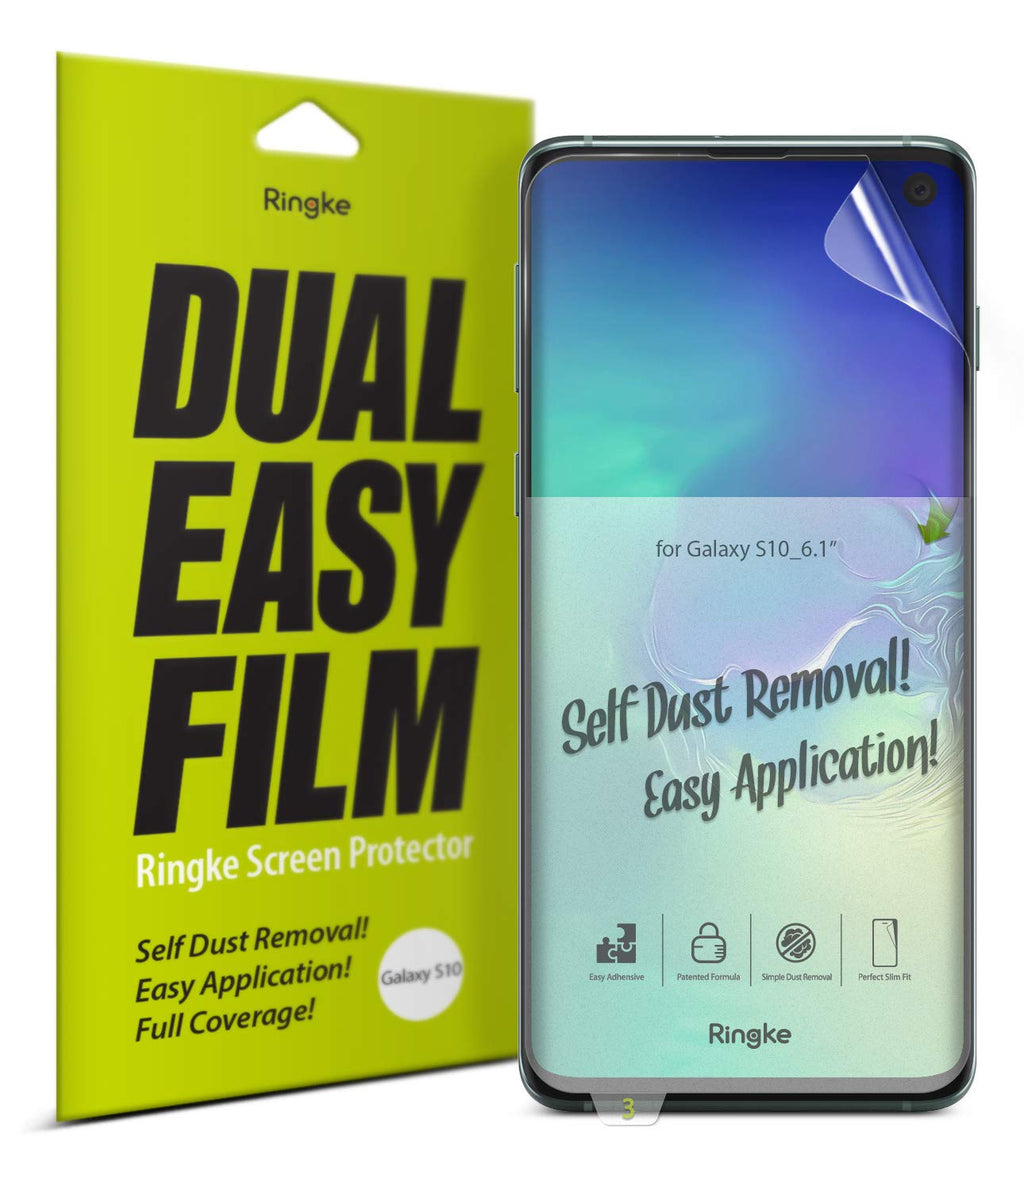 Galaxy S10 [Dual Easy Full Cover] Screen Protector [2 Pack]